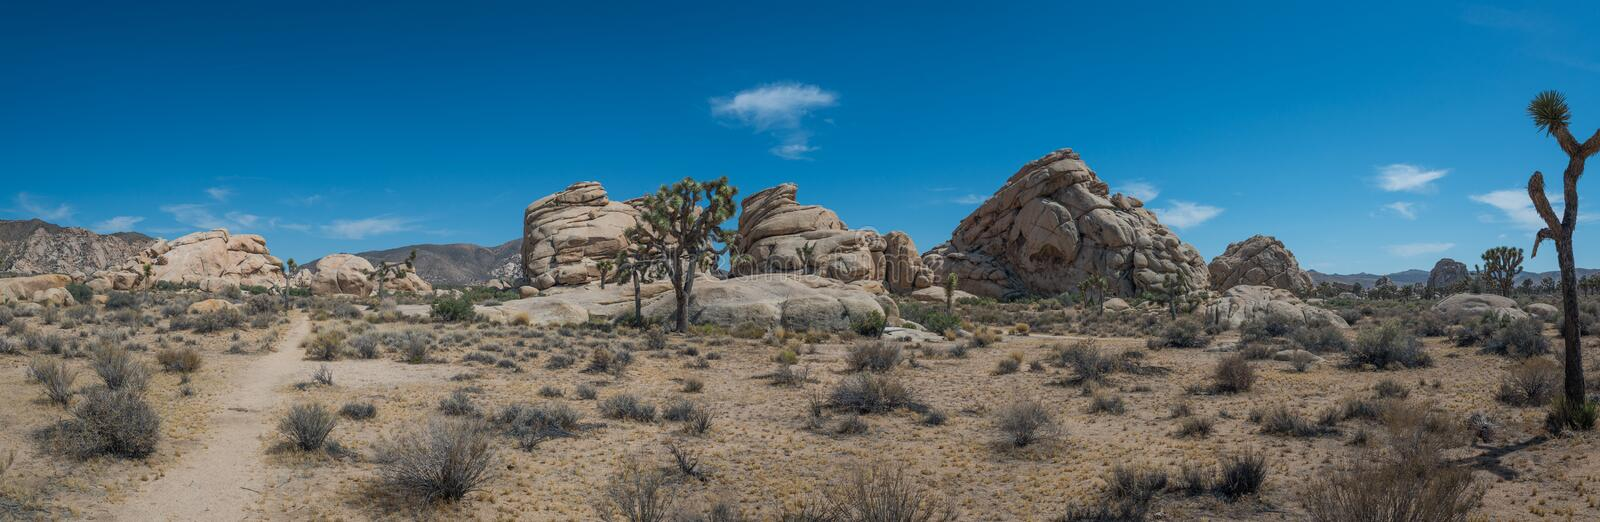 Joshua Tree National Park Panorama imagem de stock royalty free